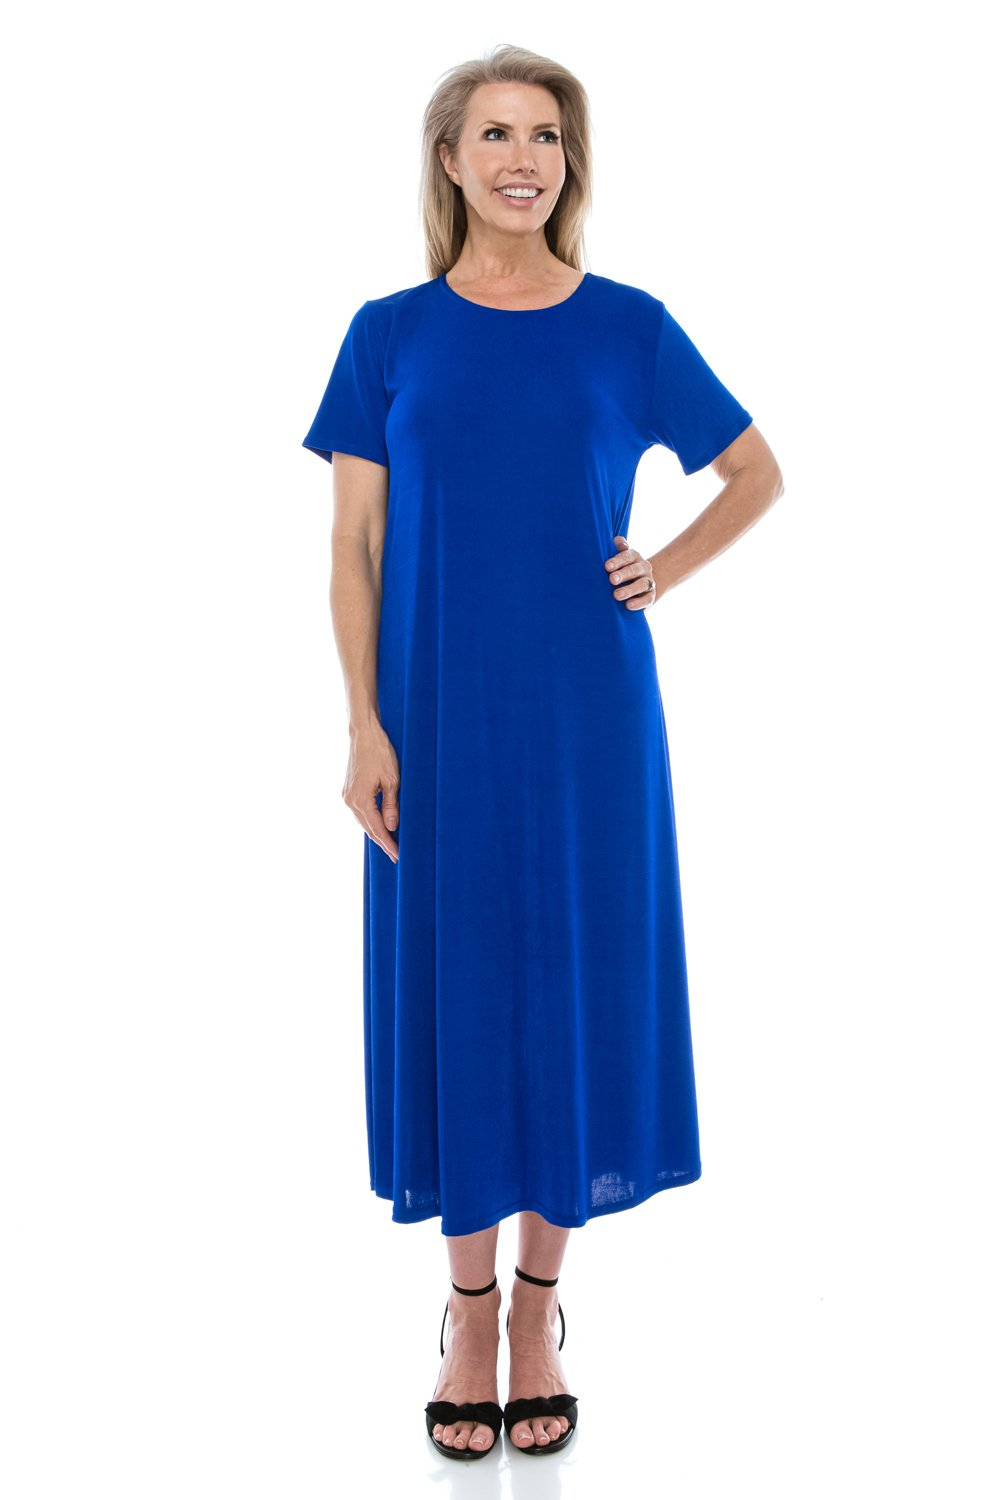 Jostar Stretchy Long Dress with Short Sleeve, Plus Sizes in Royal Color in 3XL Size